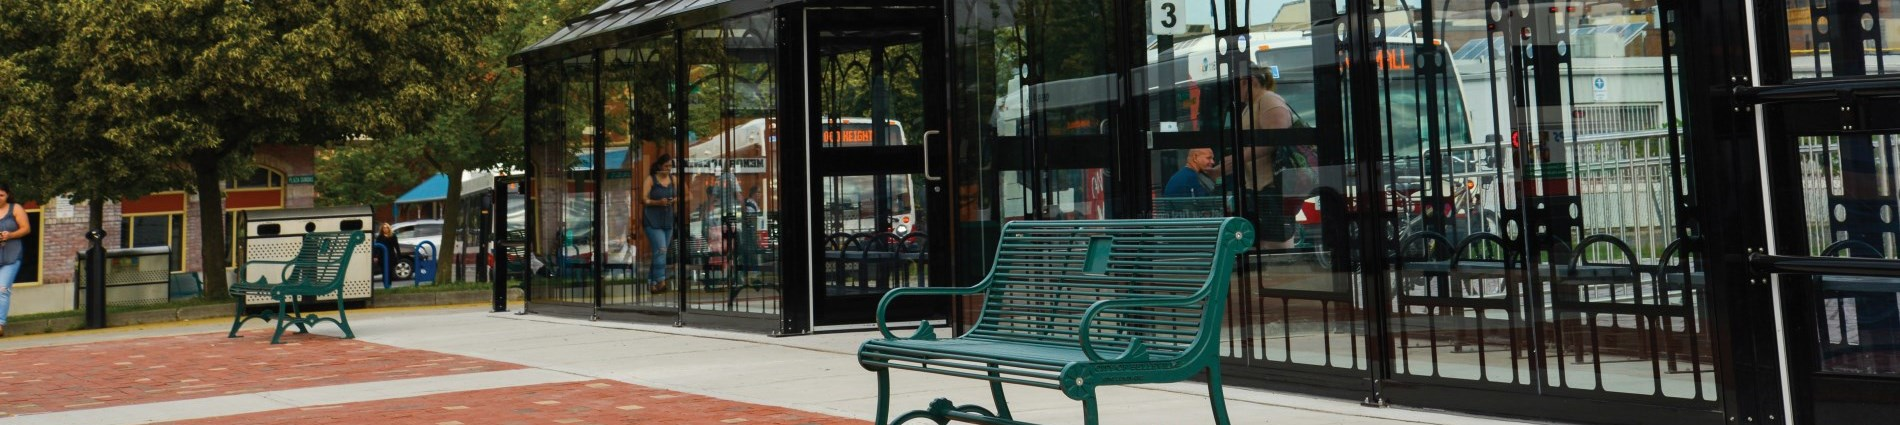 Cropped photo of transit terminal with benches